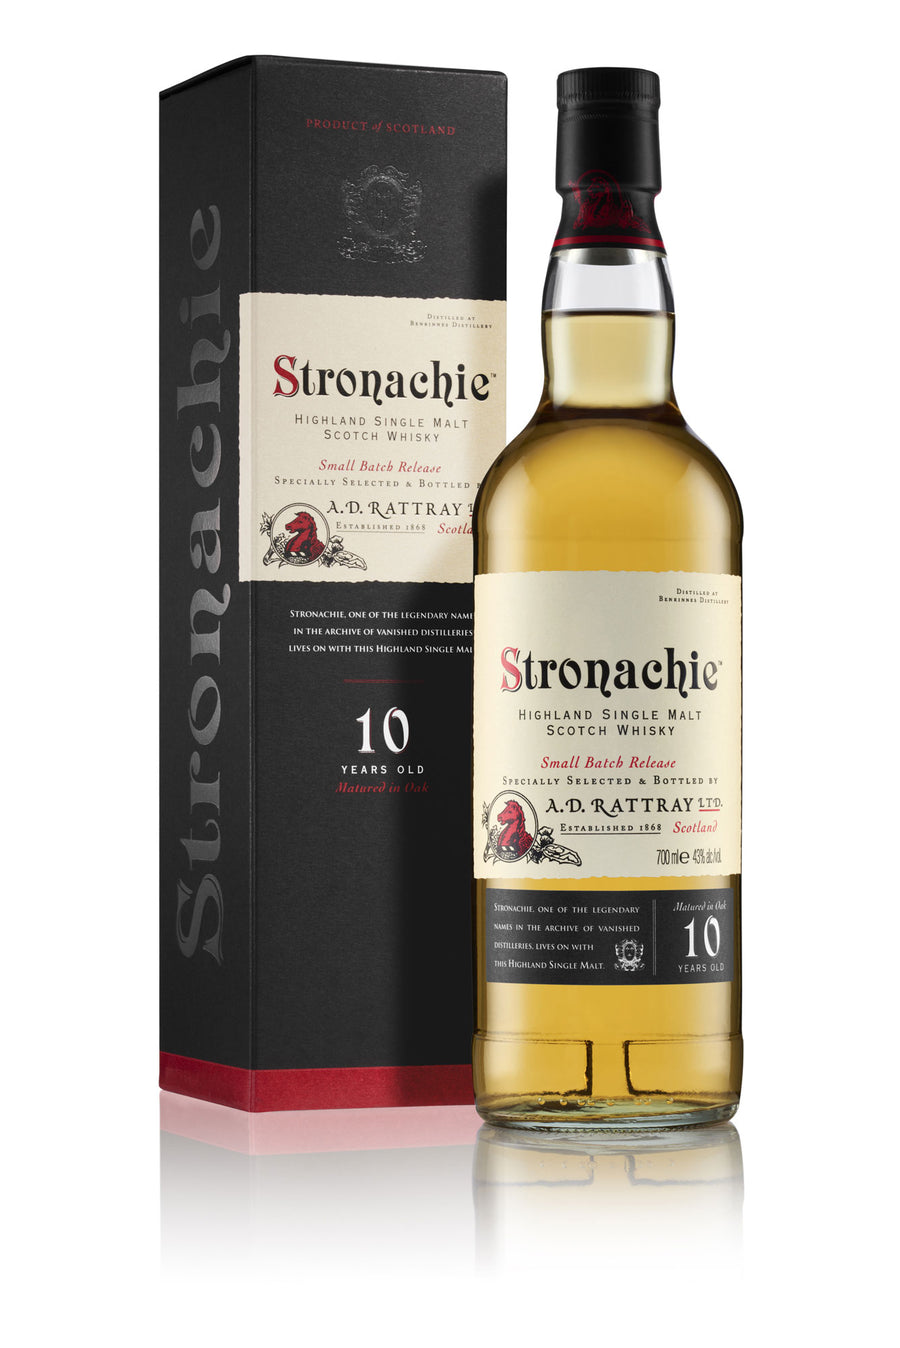 Stronachie 10 Year Old Single Malt